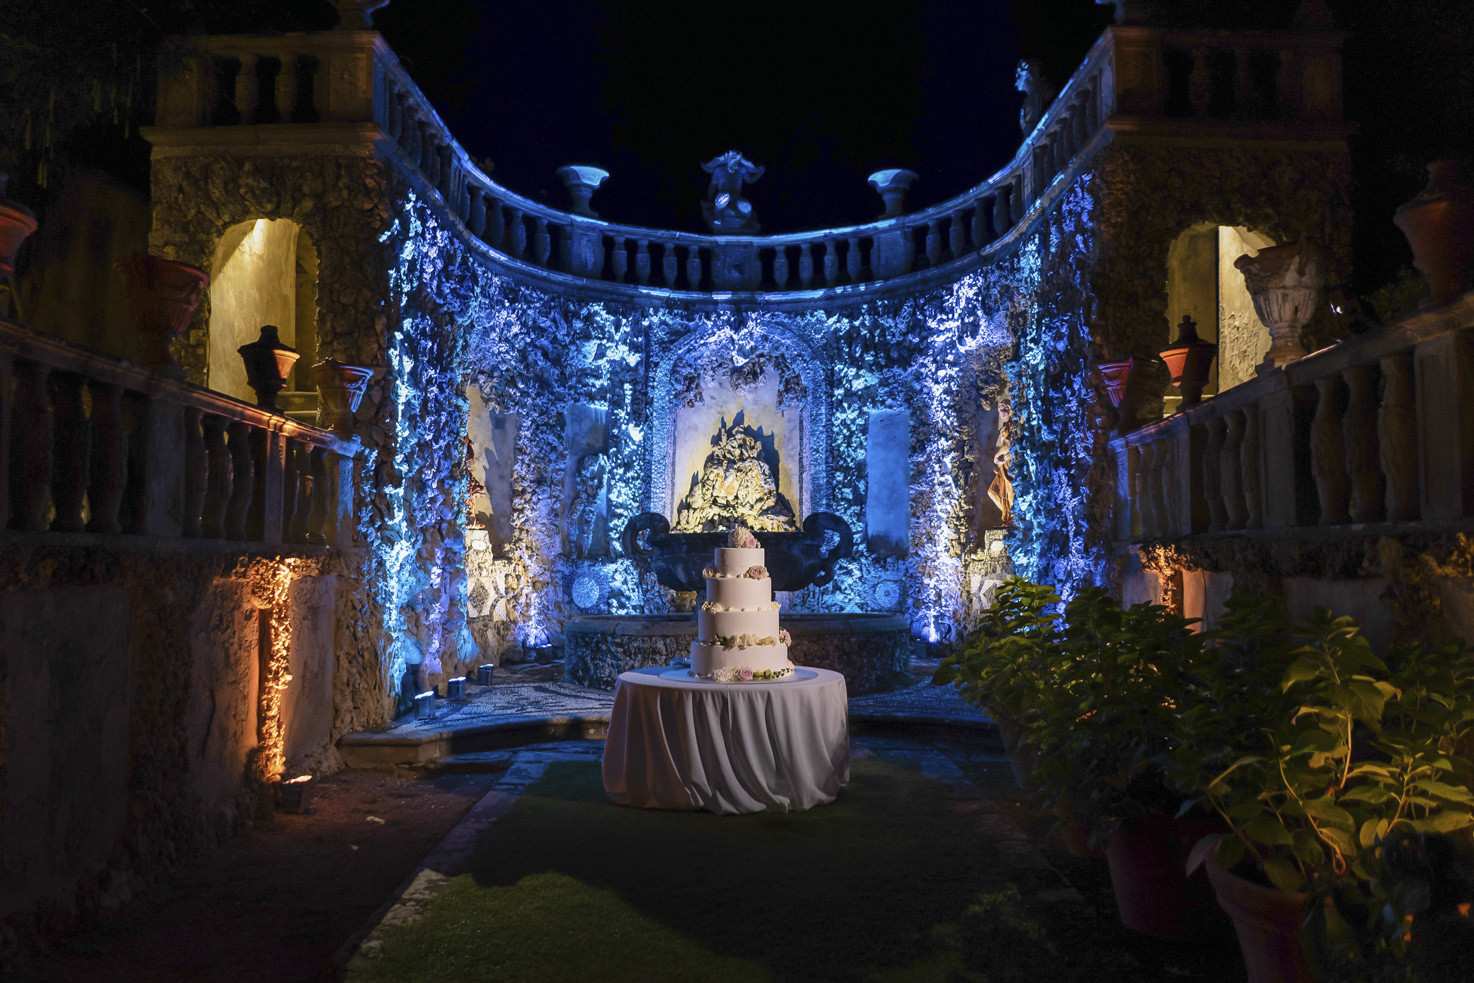 Wedding cake in the grotto pavilion